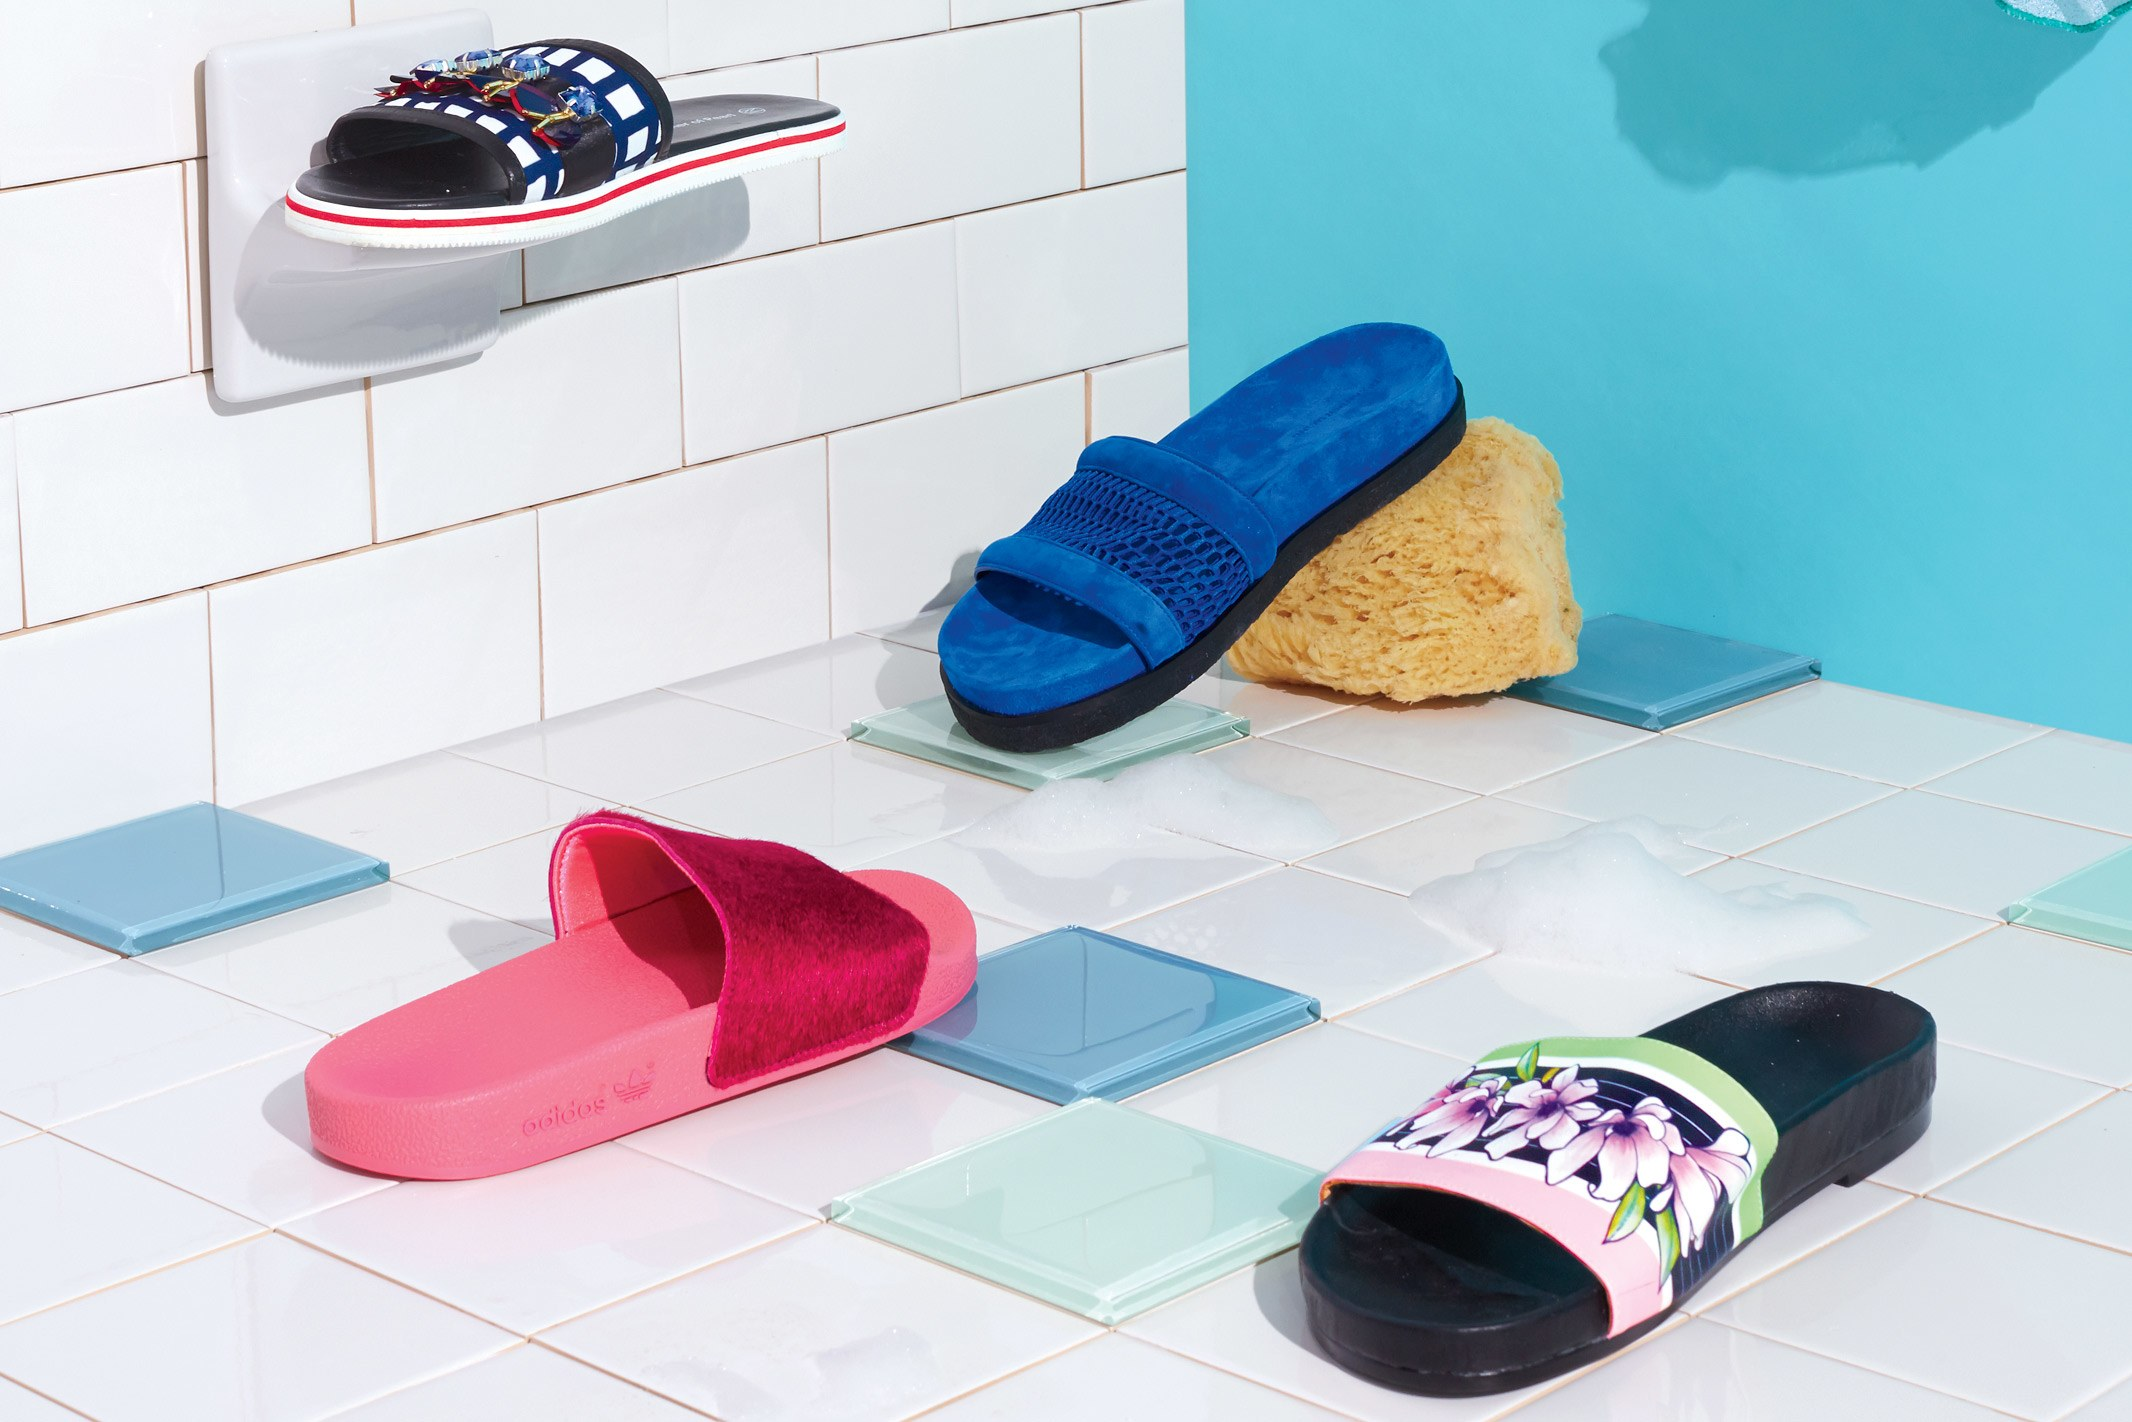 #3 Shower Shoes